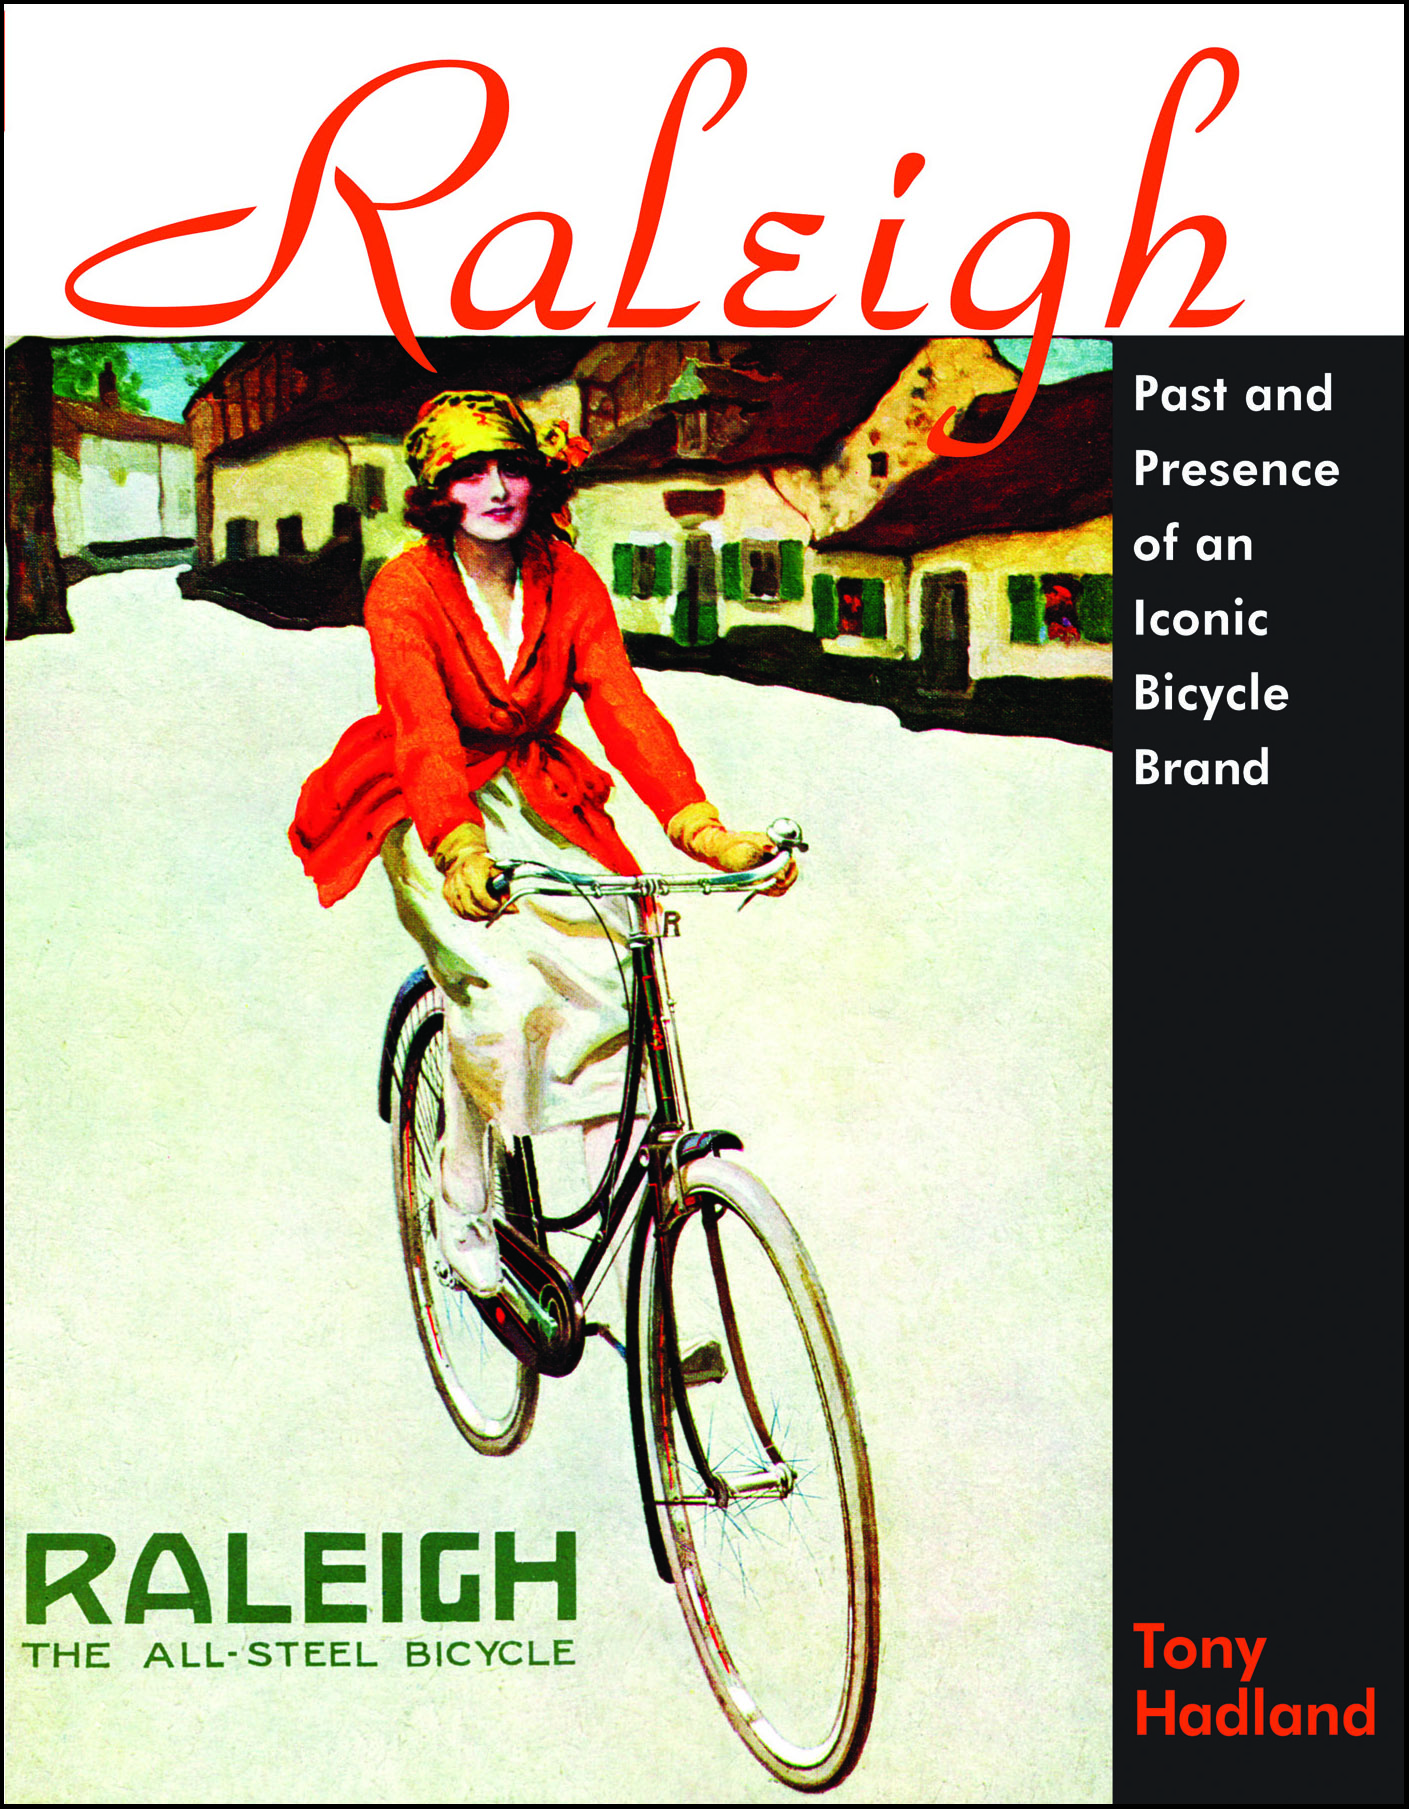 Teen raleigh dating bicycle